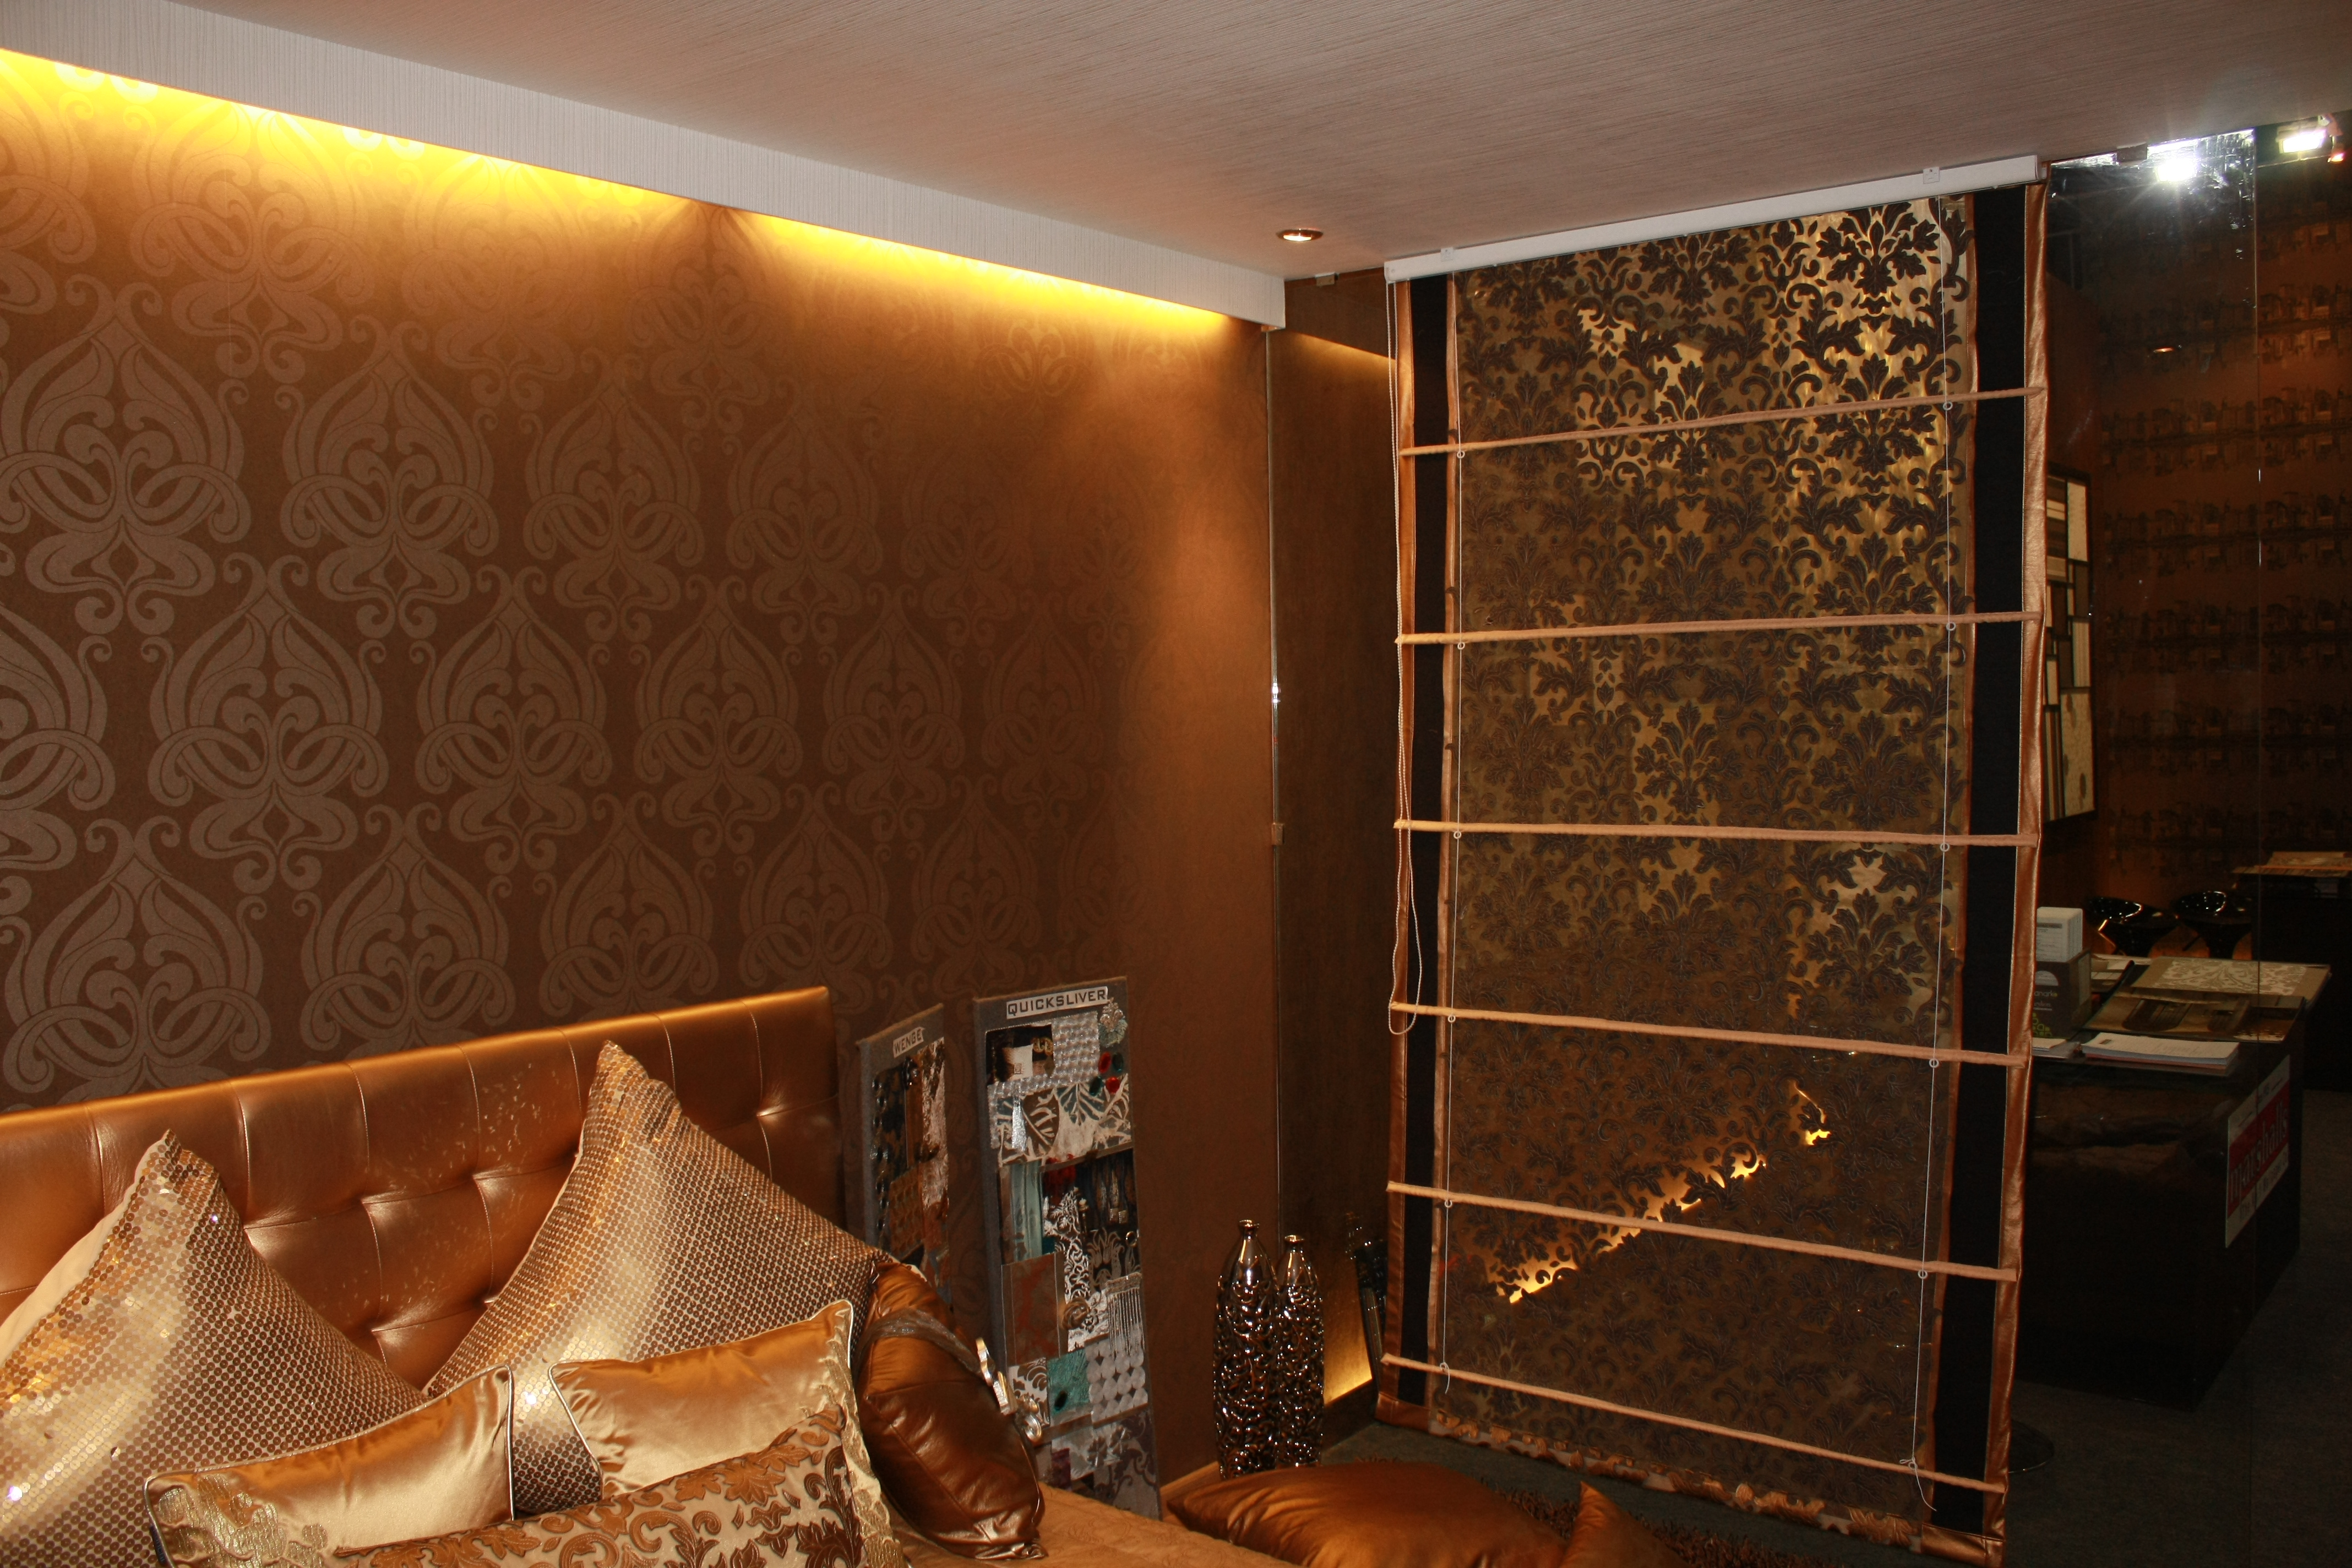 Exhibition Stall Styles : Marshalls wallpapers exhibition at bkc happy walls